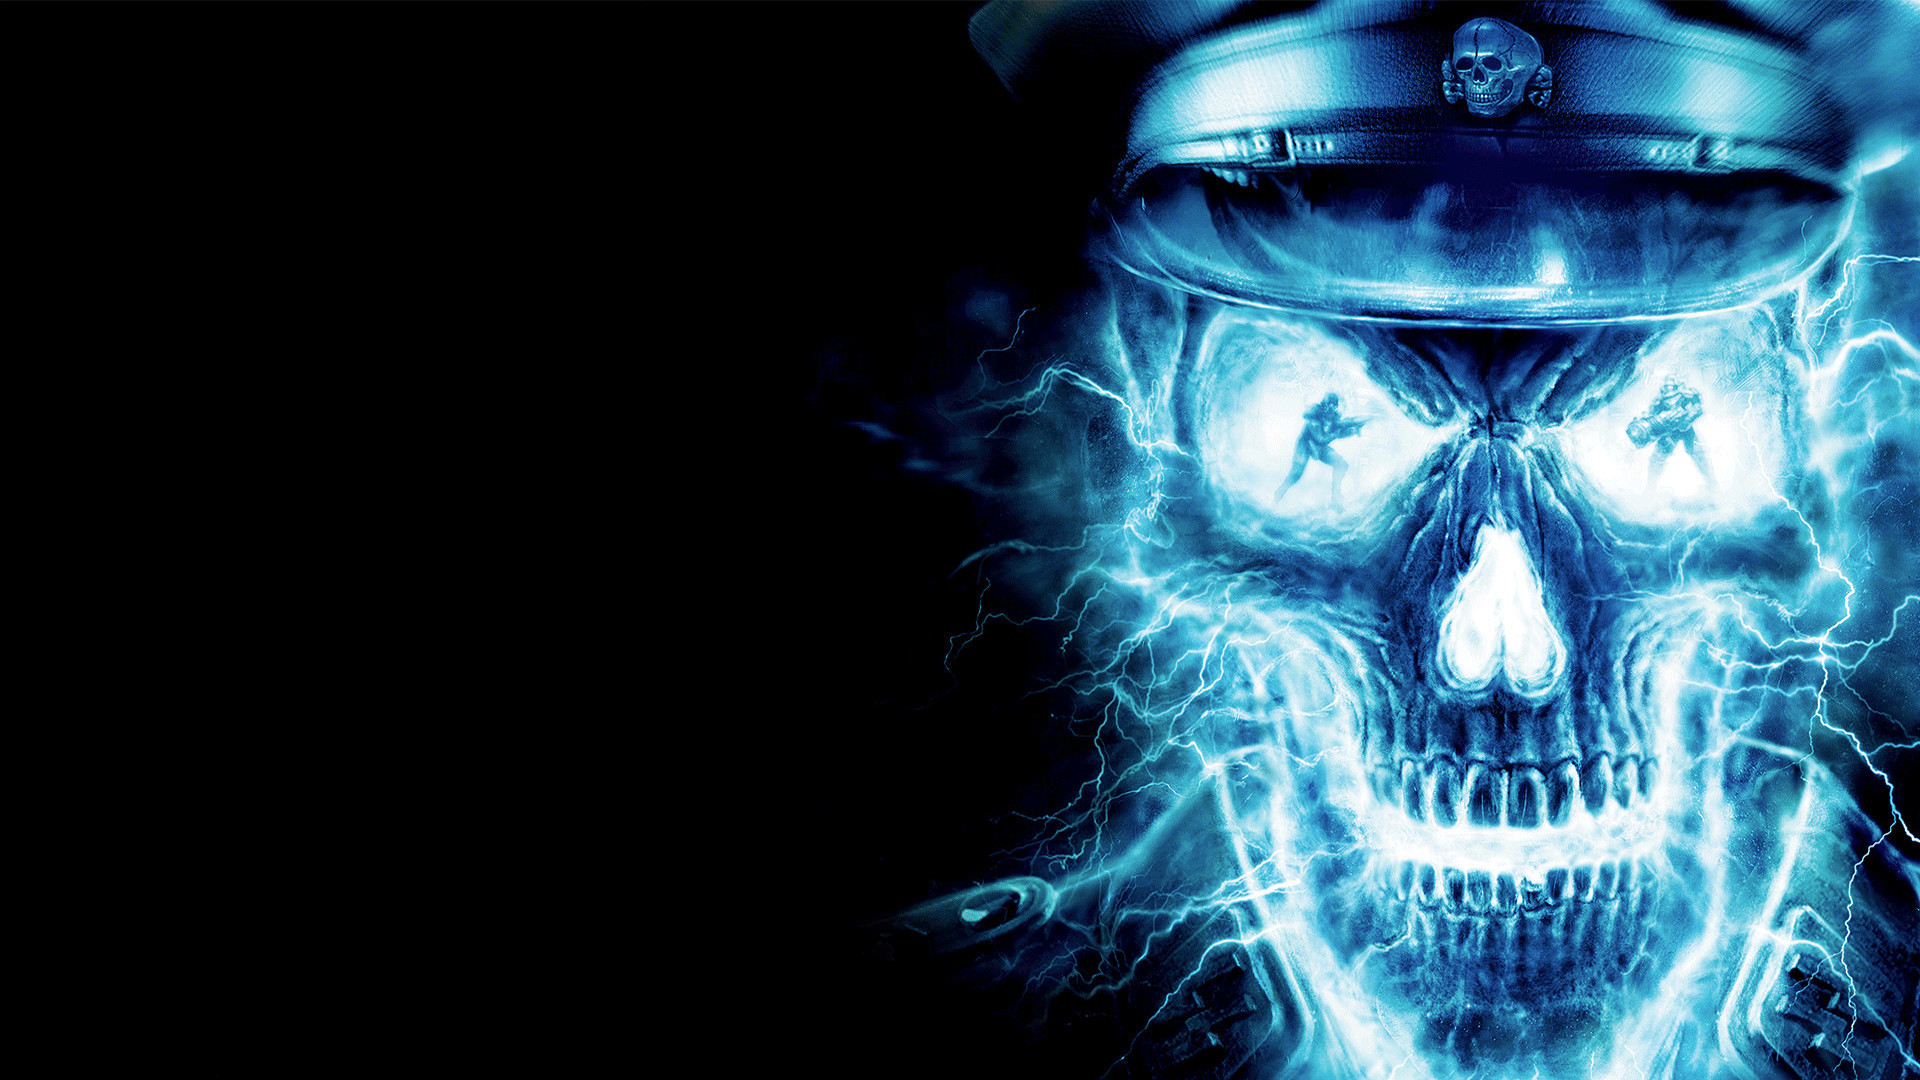 Res: 1920x1080, Blue Fire Wallpaper  Blue Fire Wallpaper Com K Wallpapers Worl On  Msi Wallpapers